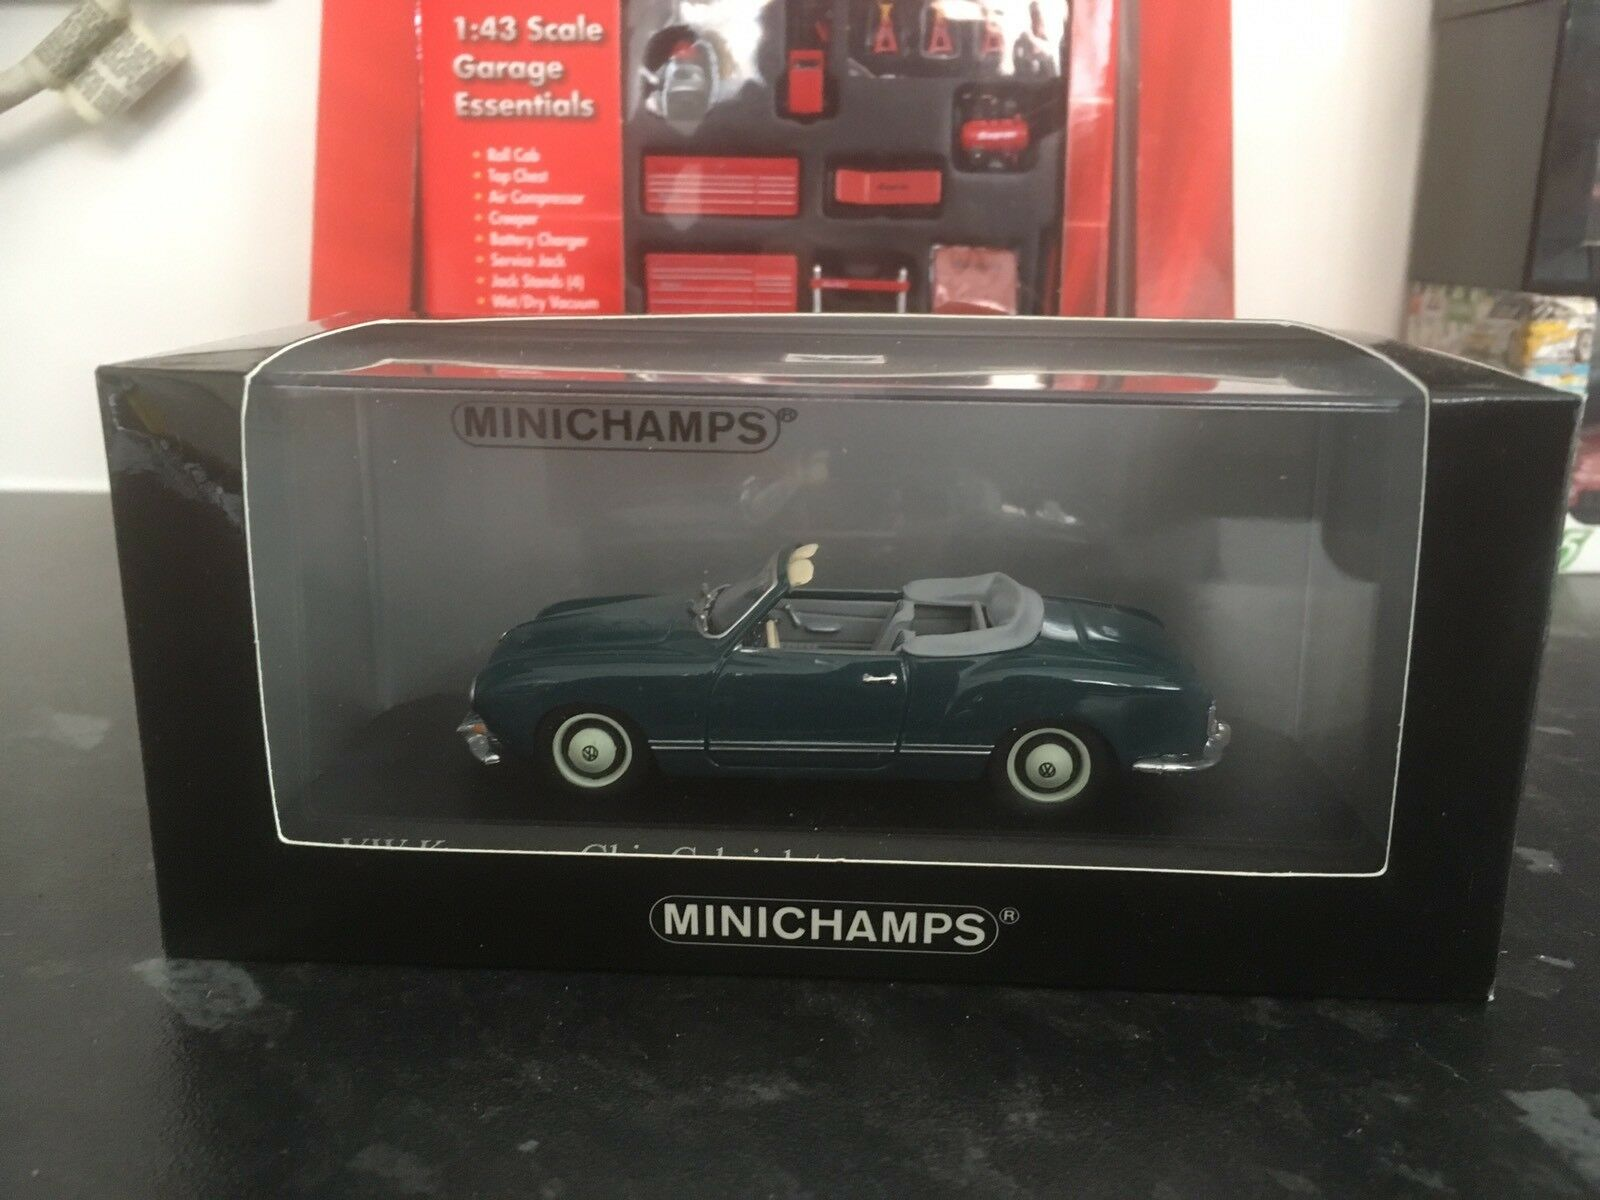 Minichamps VW Karmann Ghia Cabriolet 1957 1957 1957 bluee 1 43 MIB Roof Down Ltd Ed 1008pcs b51101